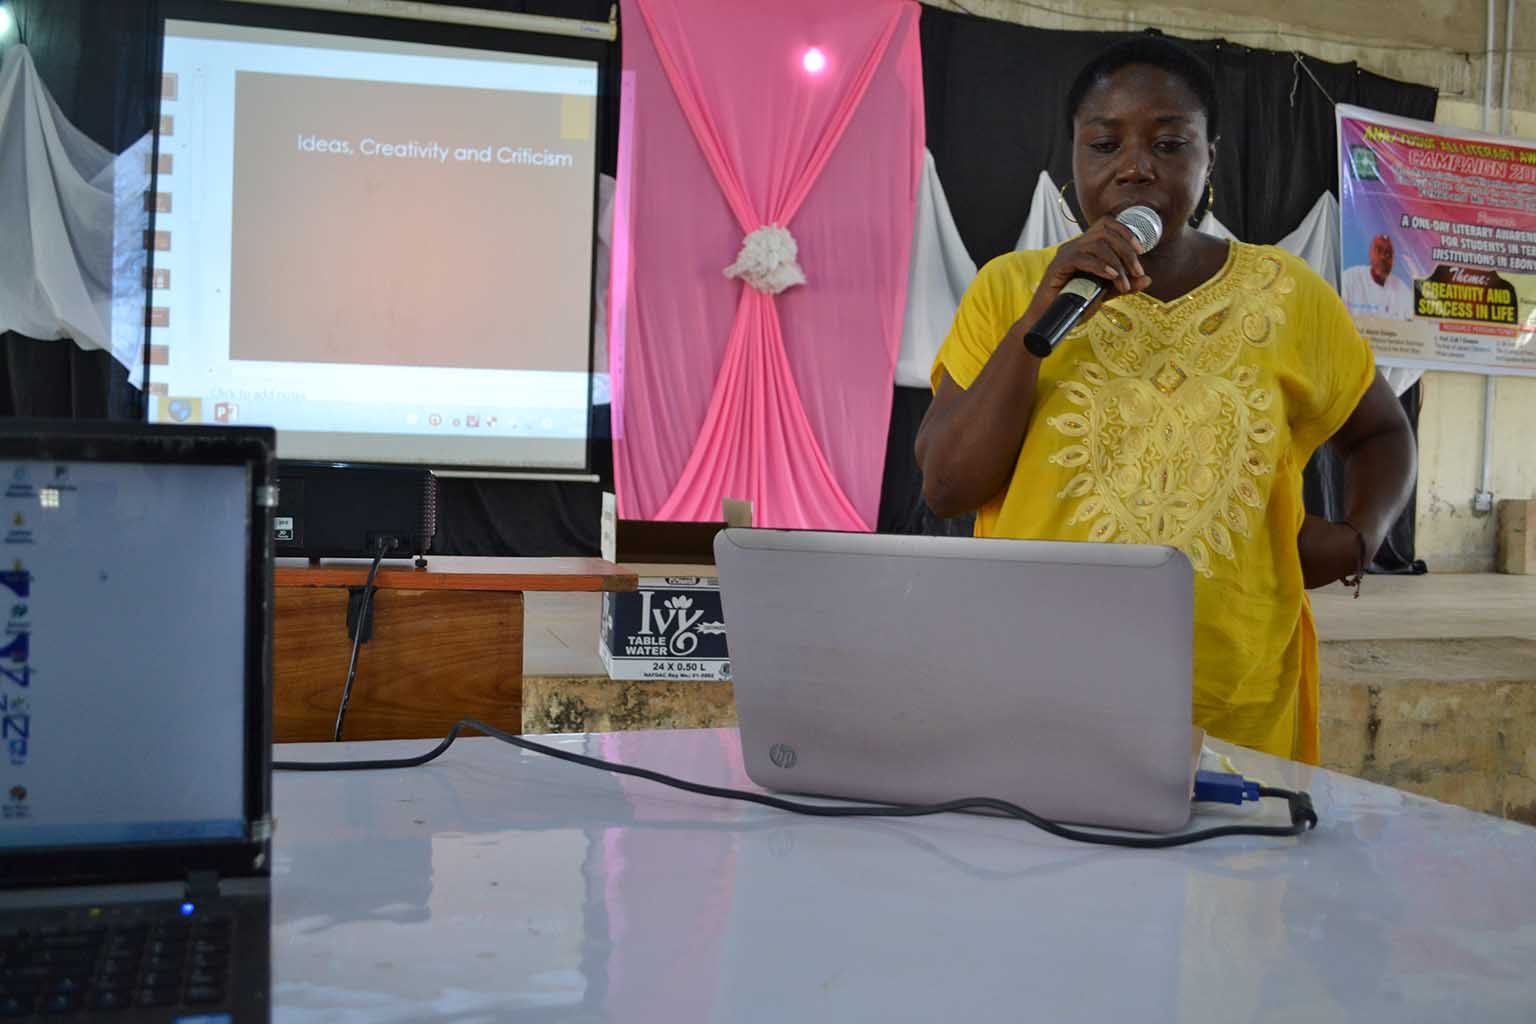 Prof G.M.T Emezue, making her presentation during the event